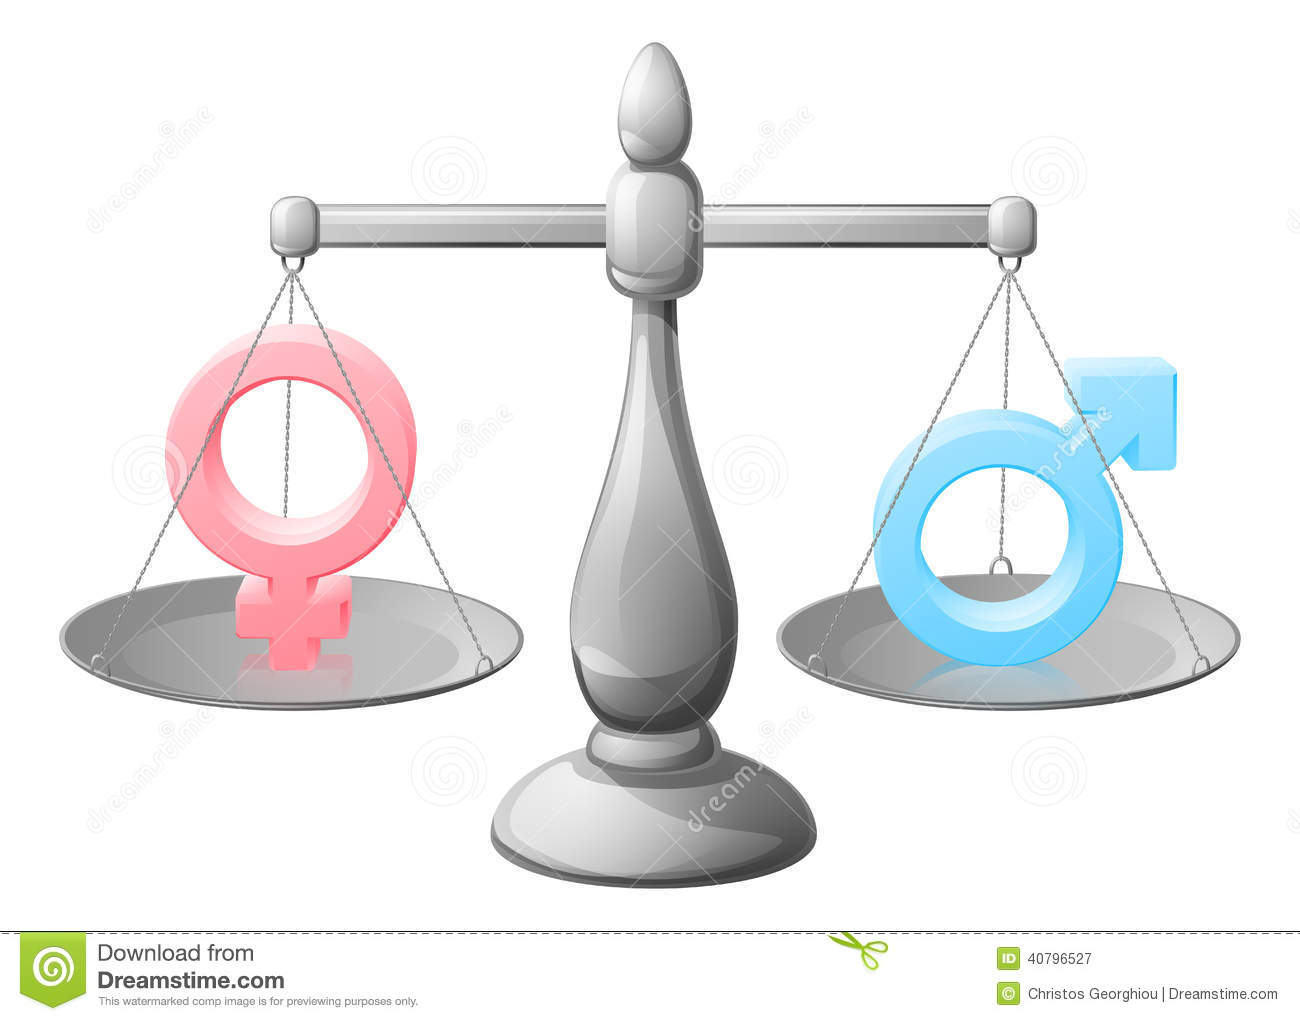 What Does your Religion say about Gender Equality?